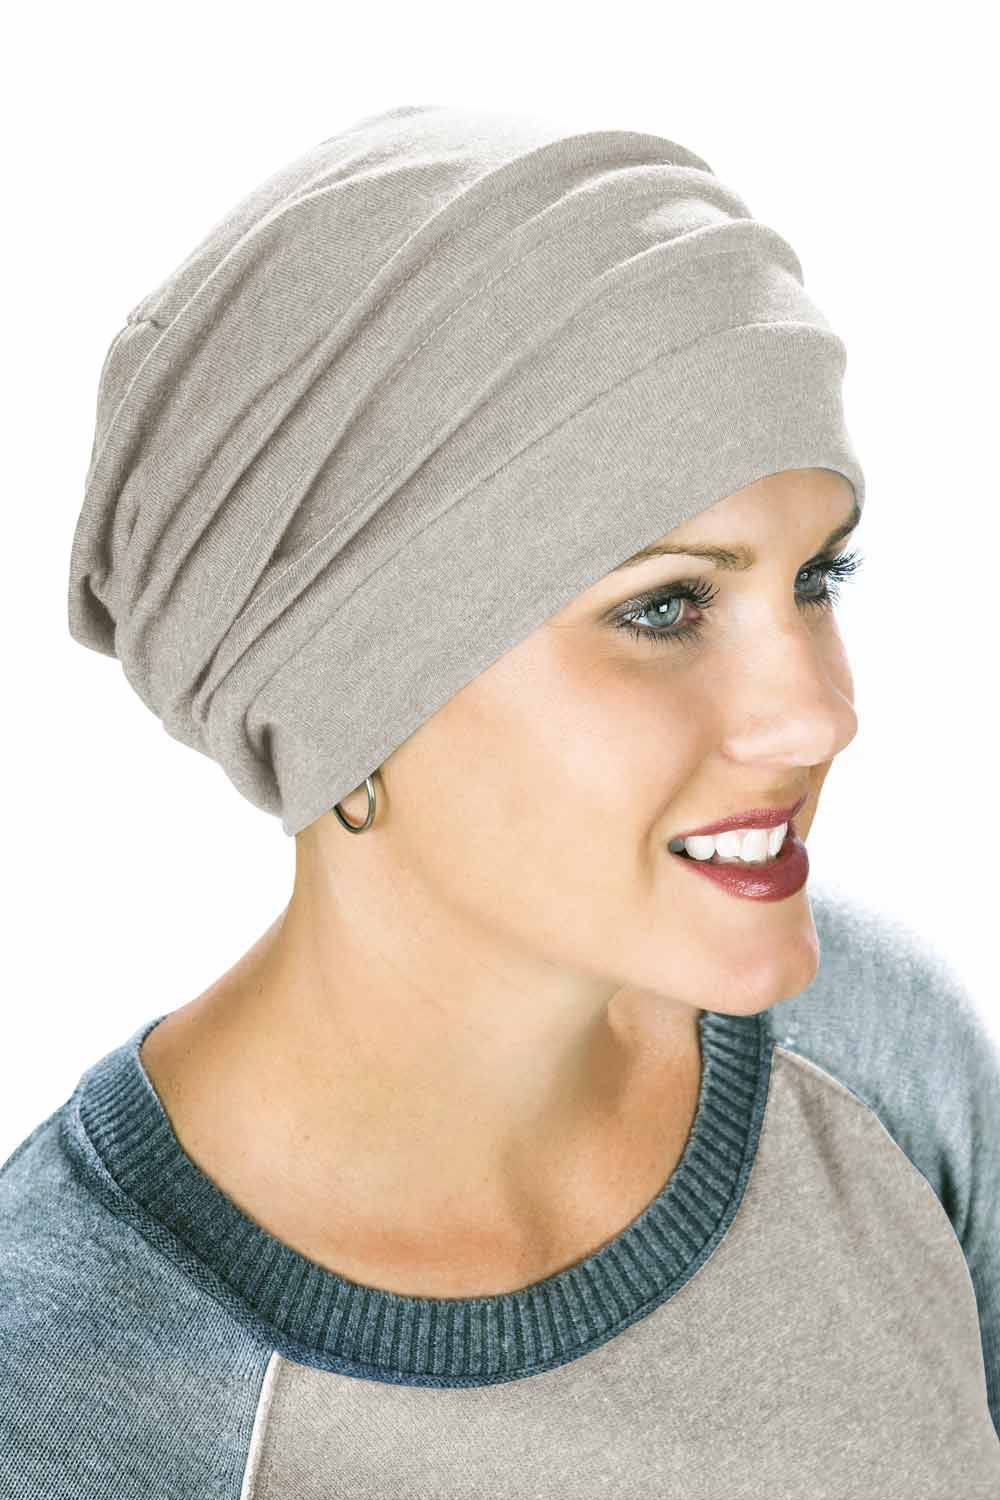 head coverings for cancer patients - chemo snood in white 8d62efd02a5